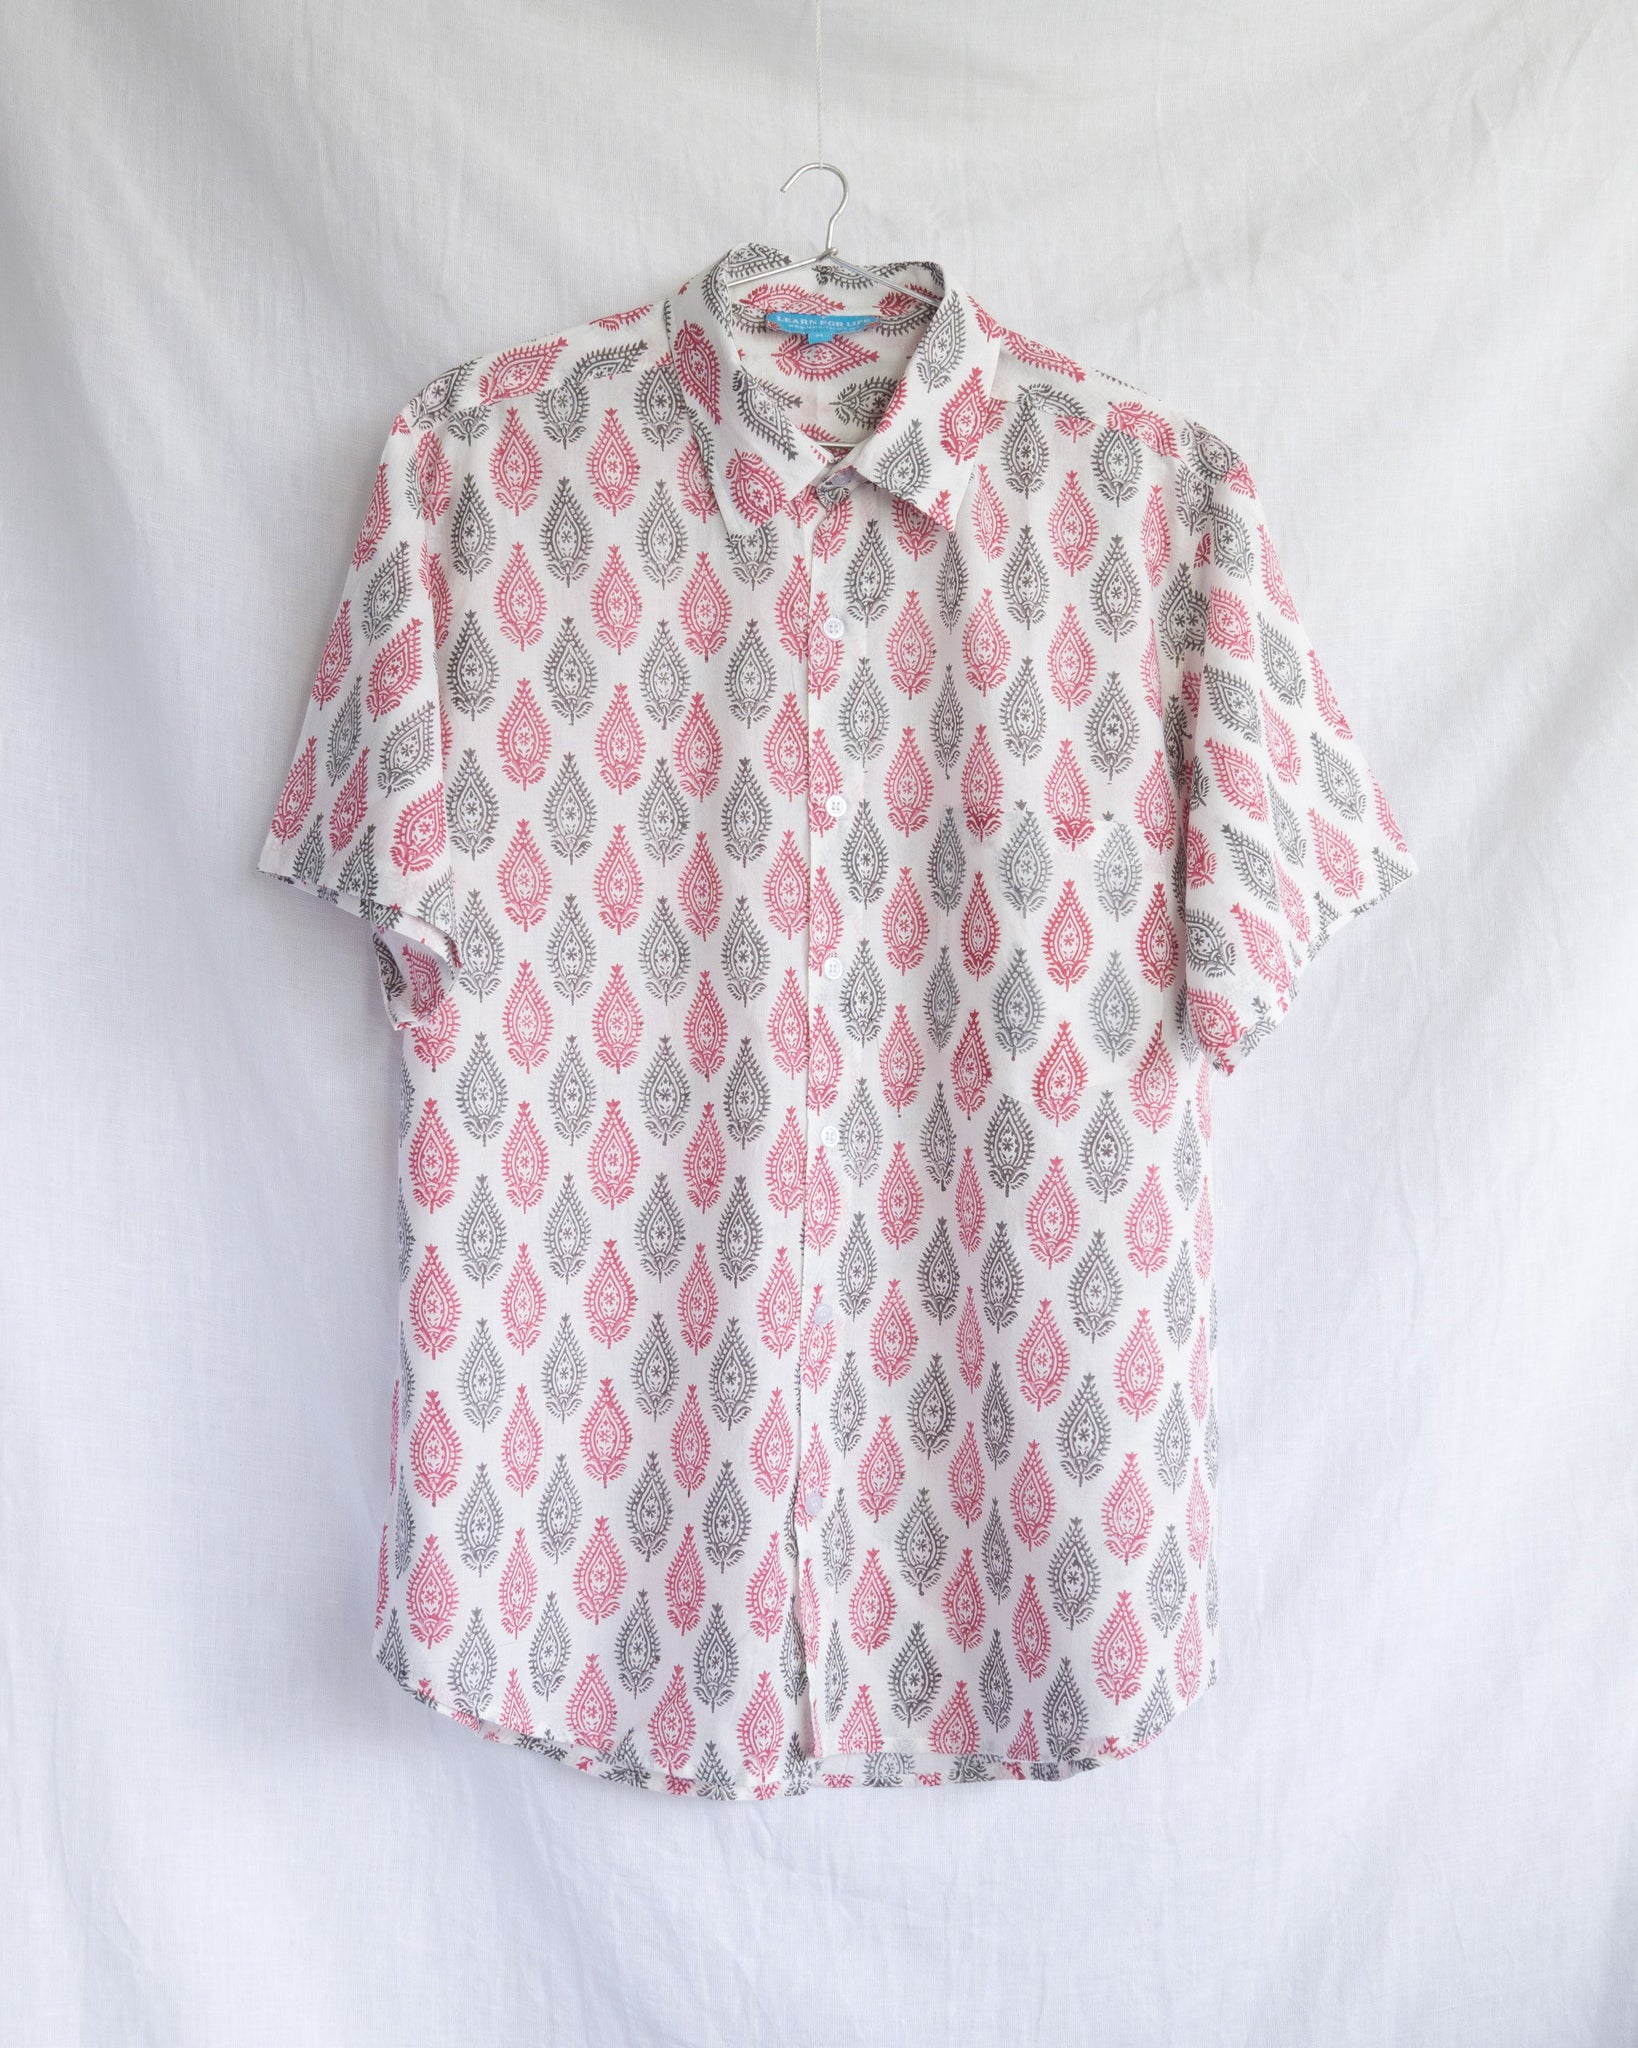 Men's Casual Short Sleeve Shirt - Red and Grey Sanganeri Buti Motif Hand-Blockprinted Cotton